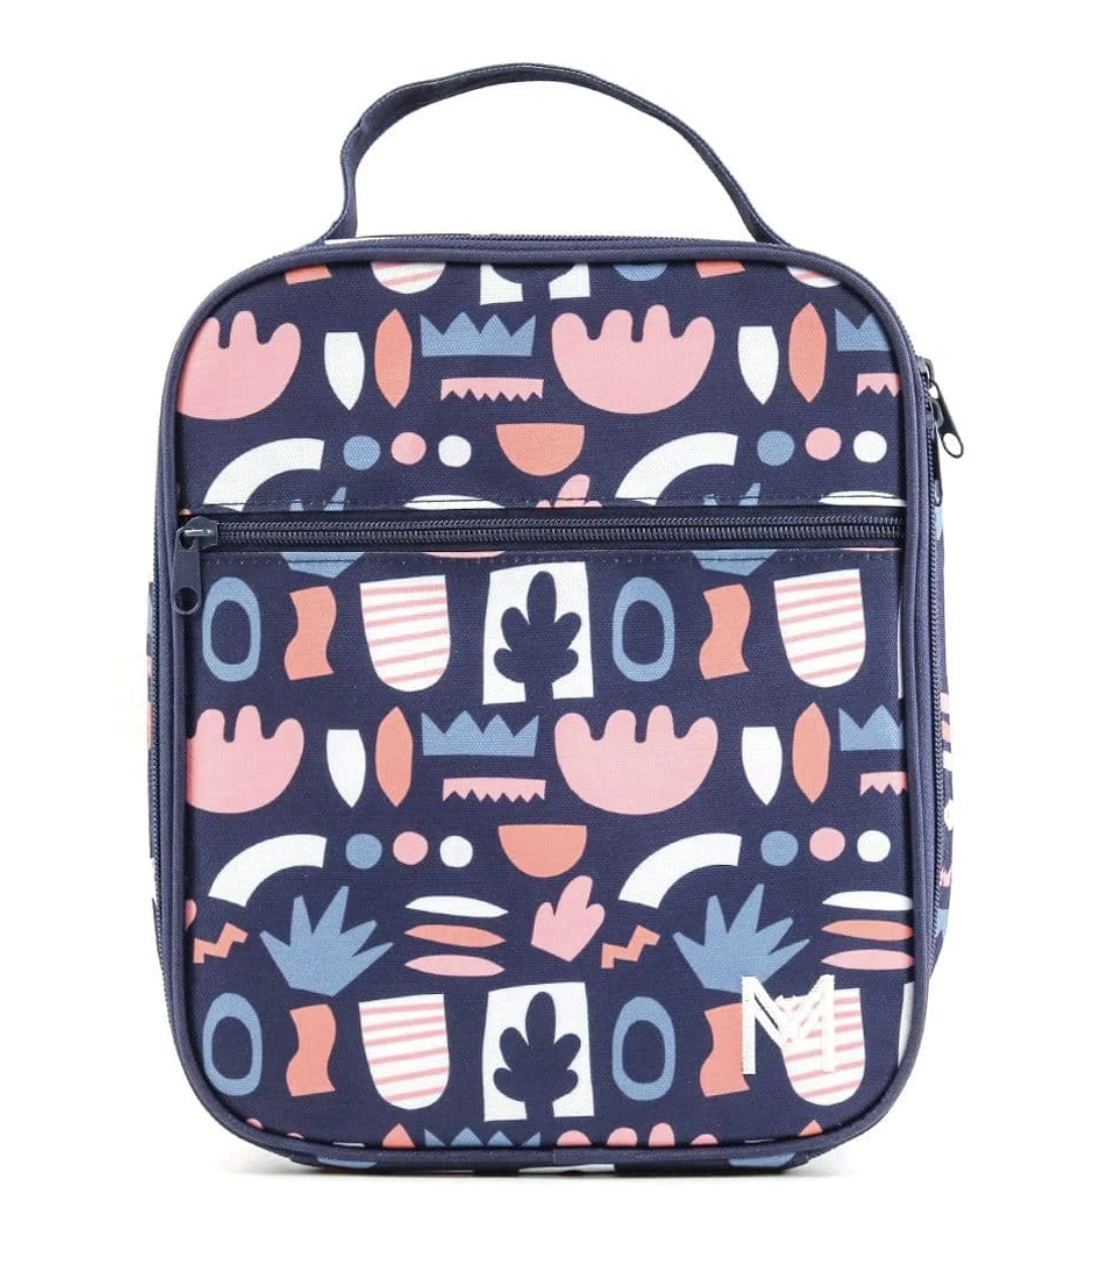 Montii insulated Lunch Bag - Bloom-1